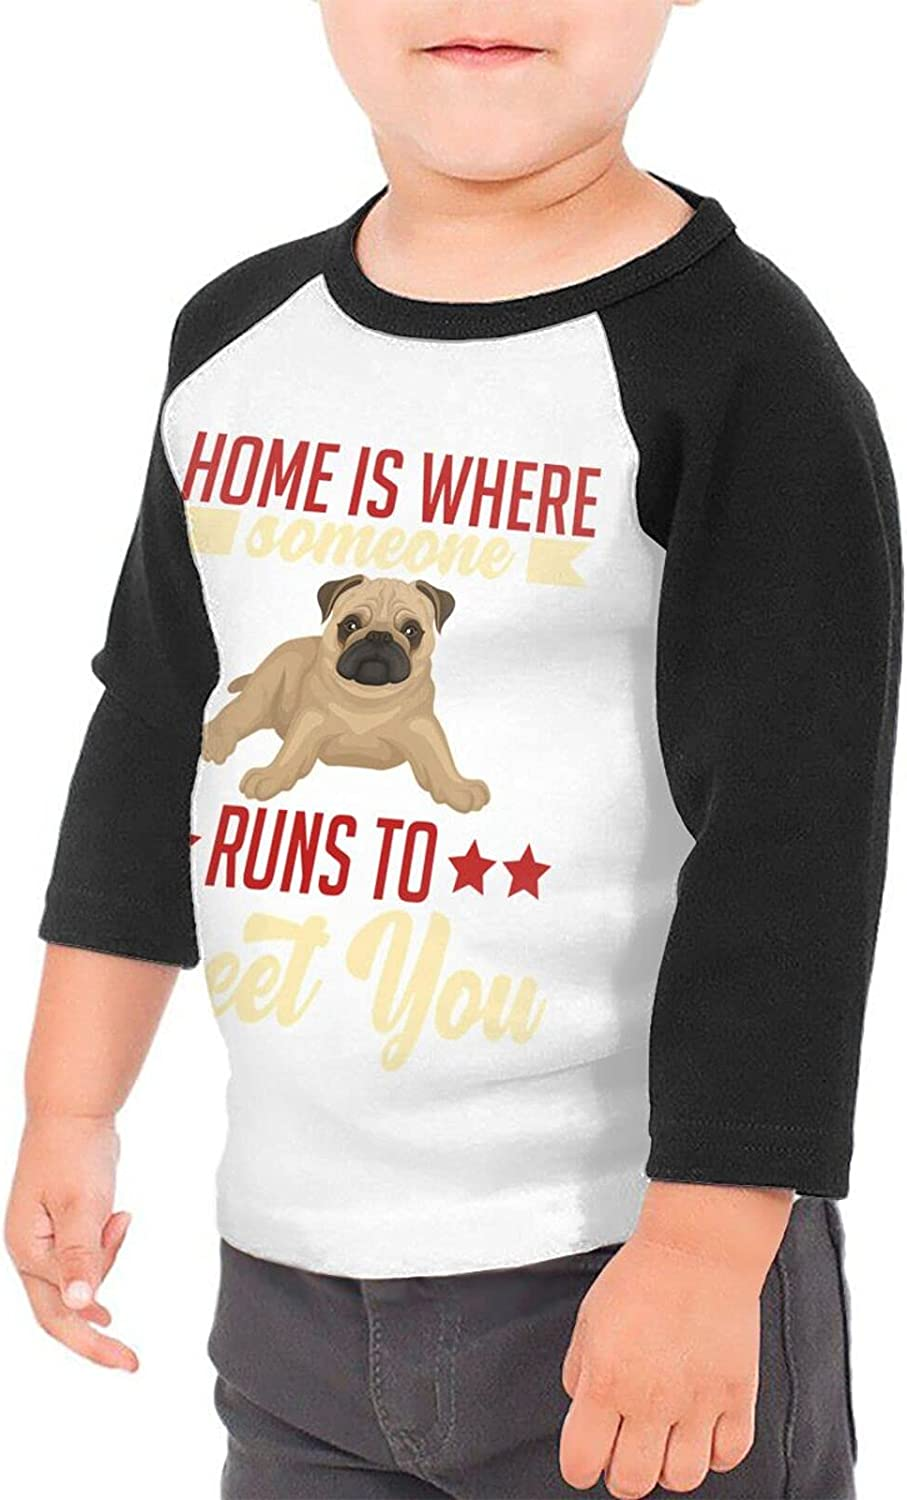 Pug Dogs Home is Where Someone Runs to Greet You T-Shirts Novelty for Youth Tees with Cool Designs